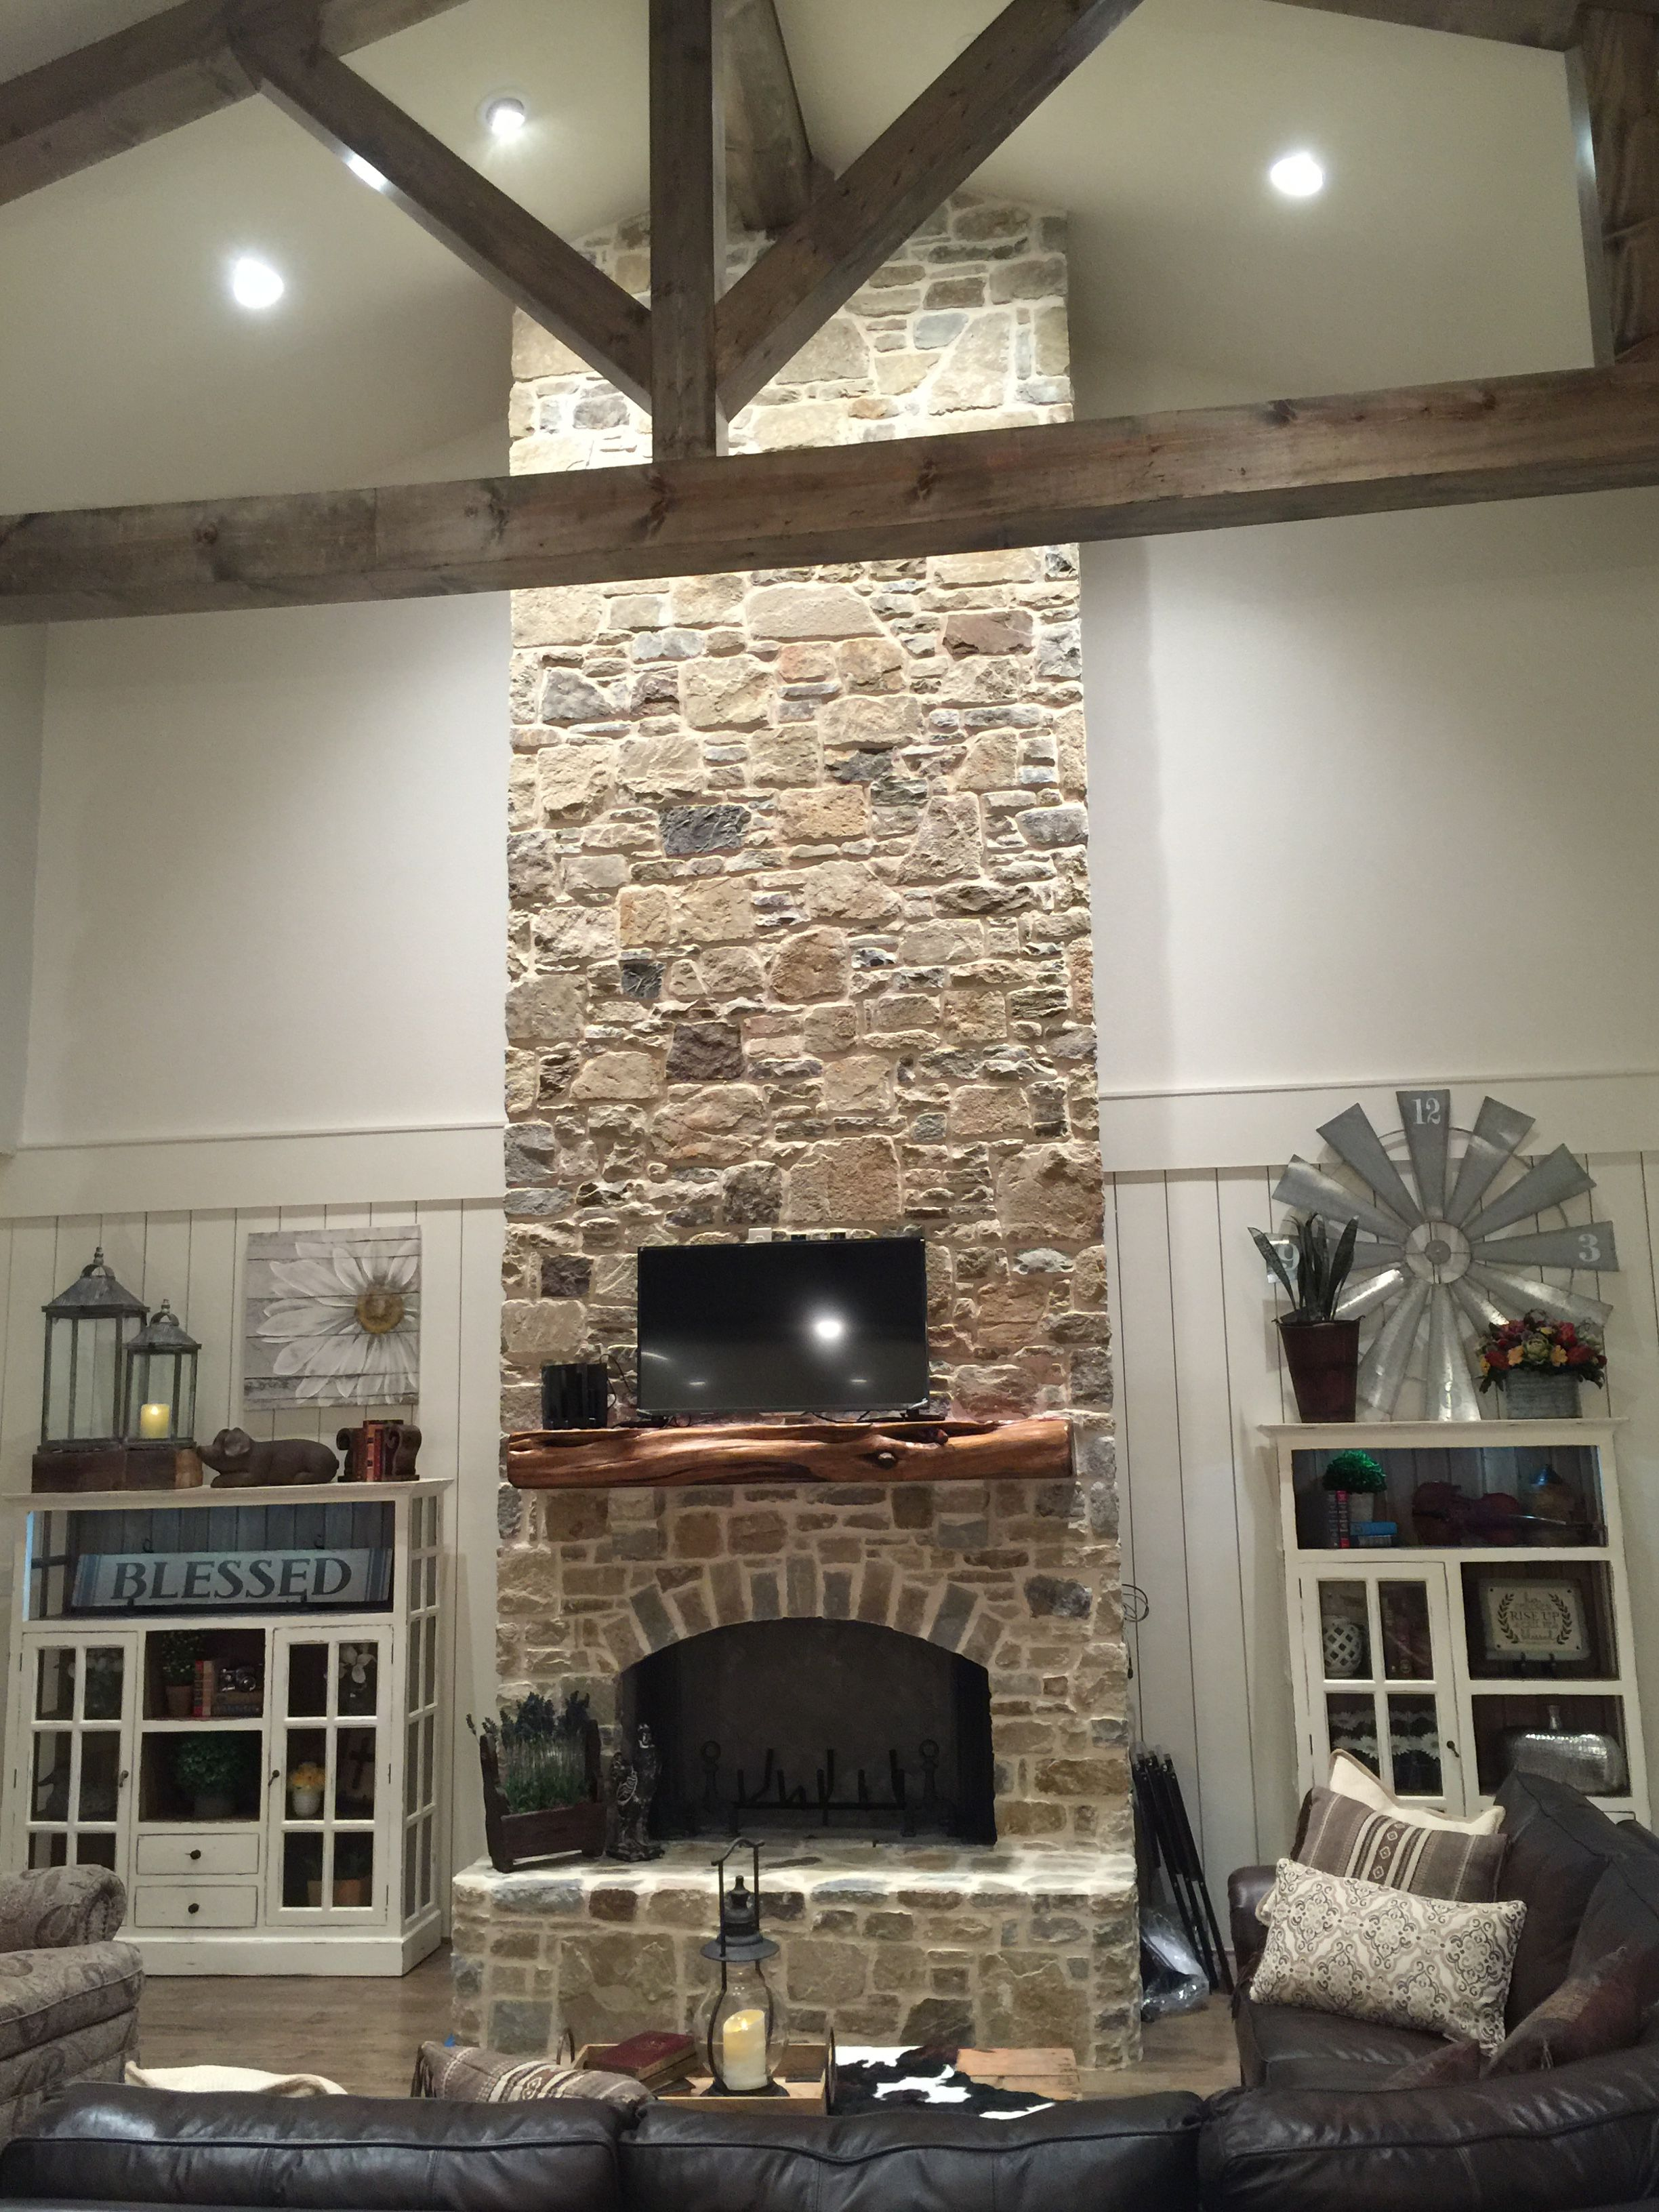 Grand Rock Fireplace In Farmhouse Great Room White Hutches On White Shiplap Walls Transitional House Transitional Fireplaces Transitional Decor